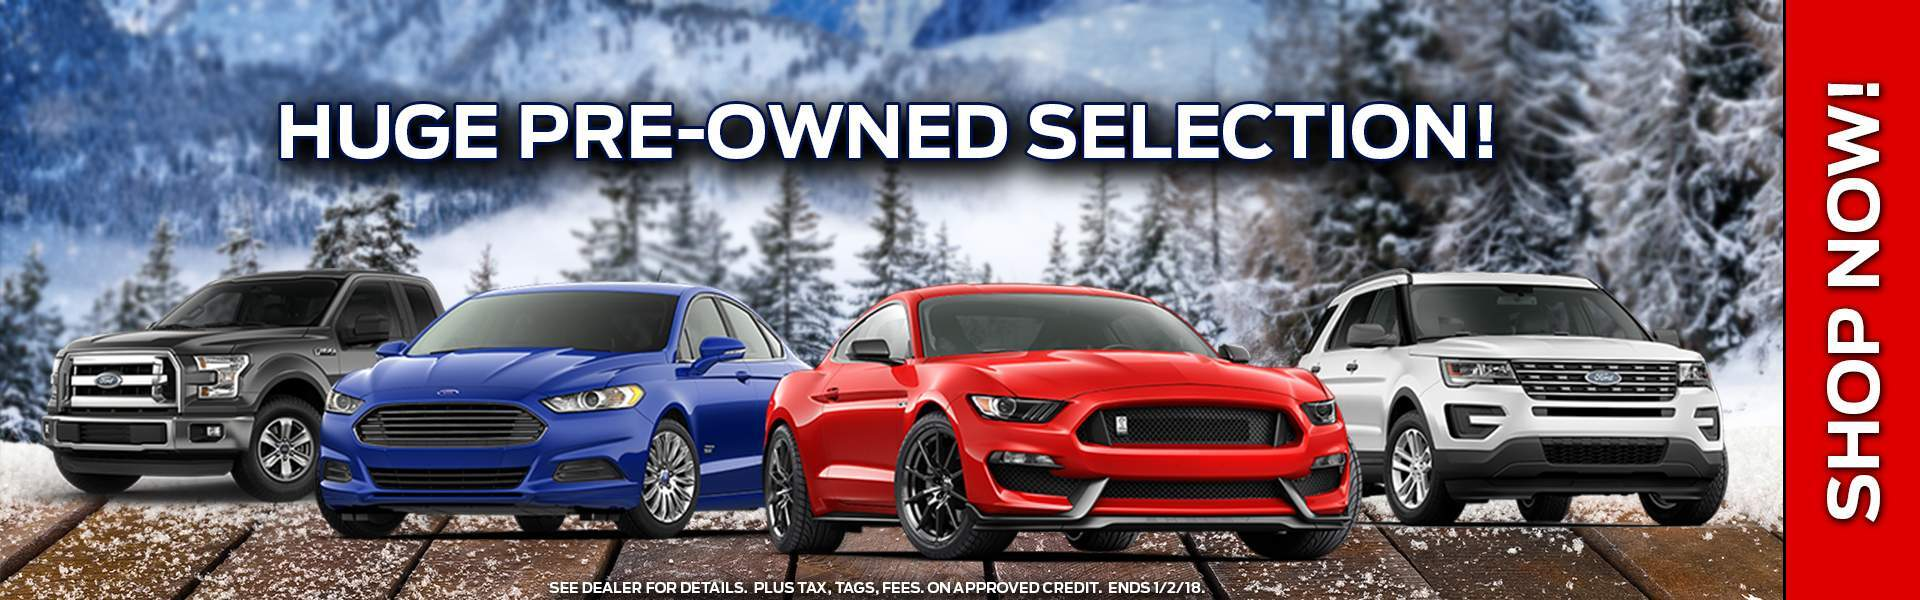 Huge Pre-Owned Selection